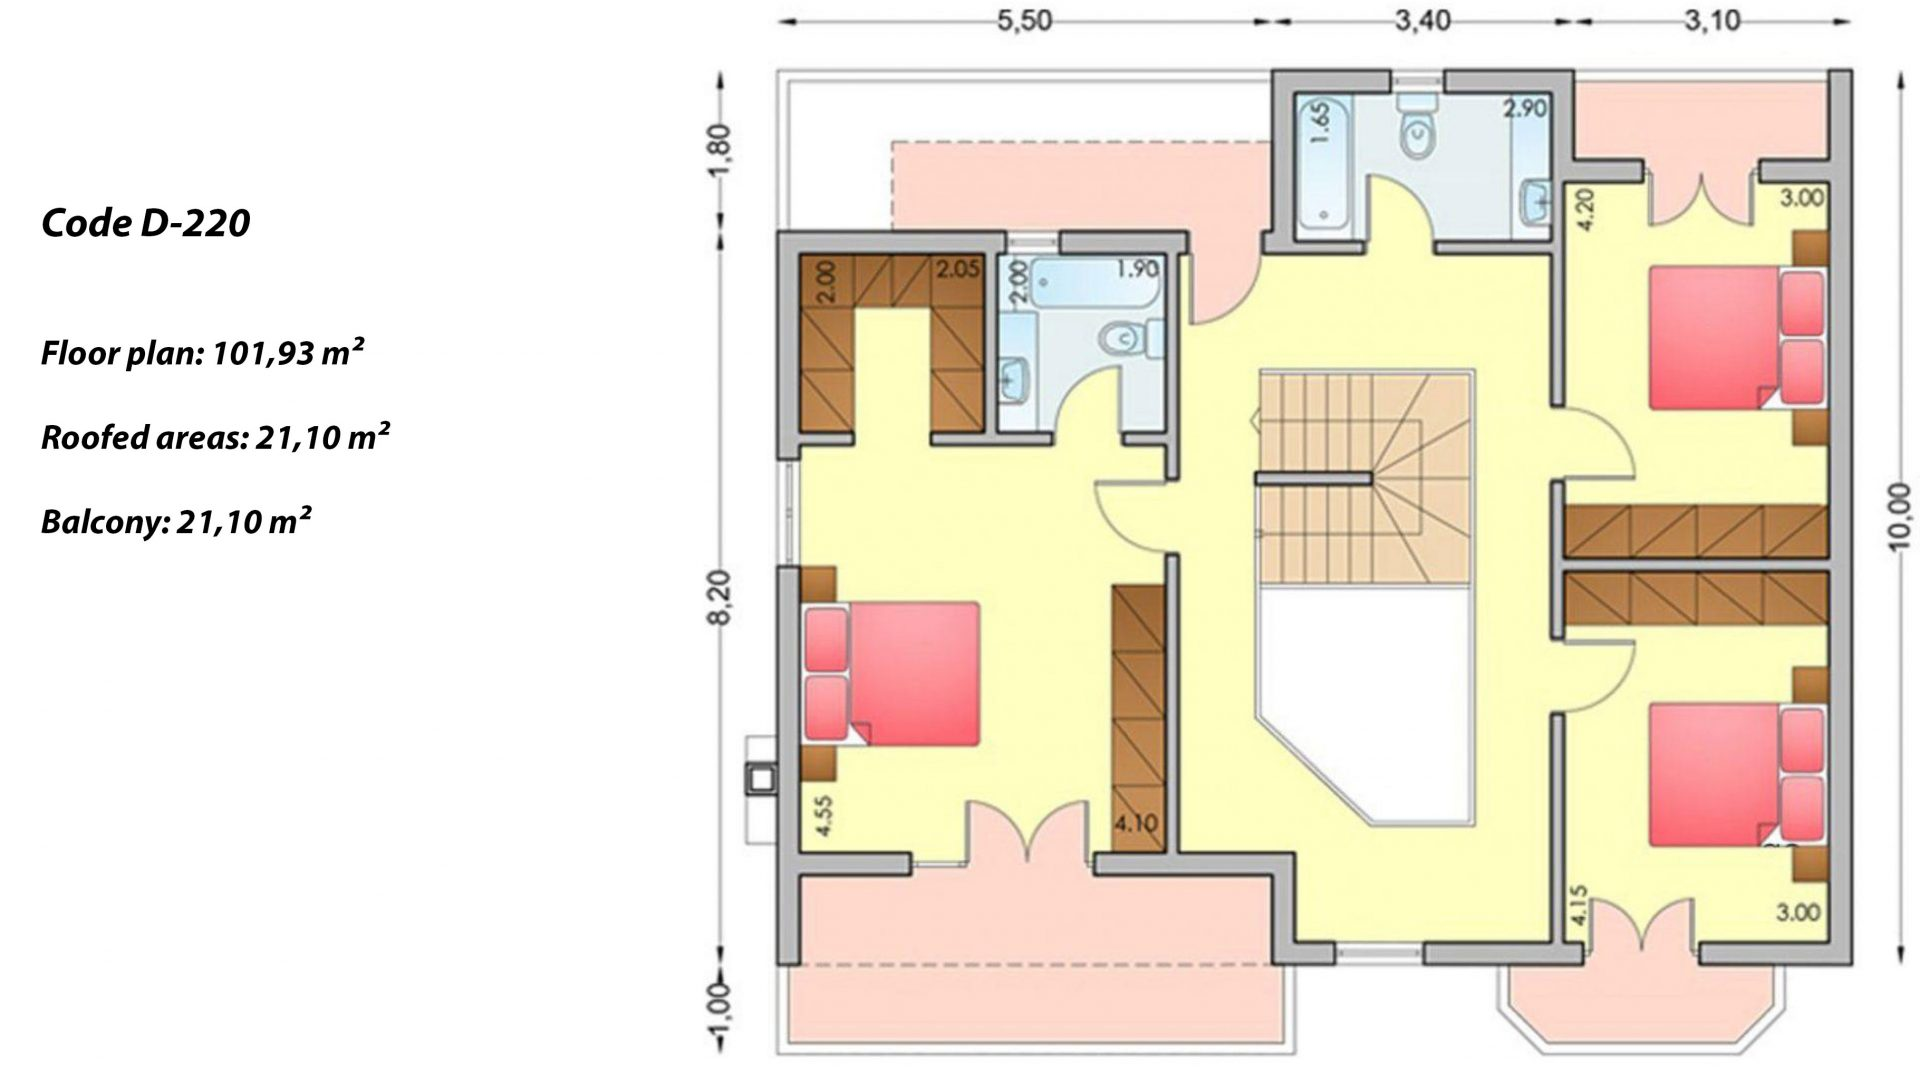 2-story house D-220, total surface of 220,70 m² ,roofed areas 48.40 m²,balconies 21.10 m²